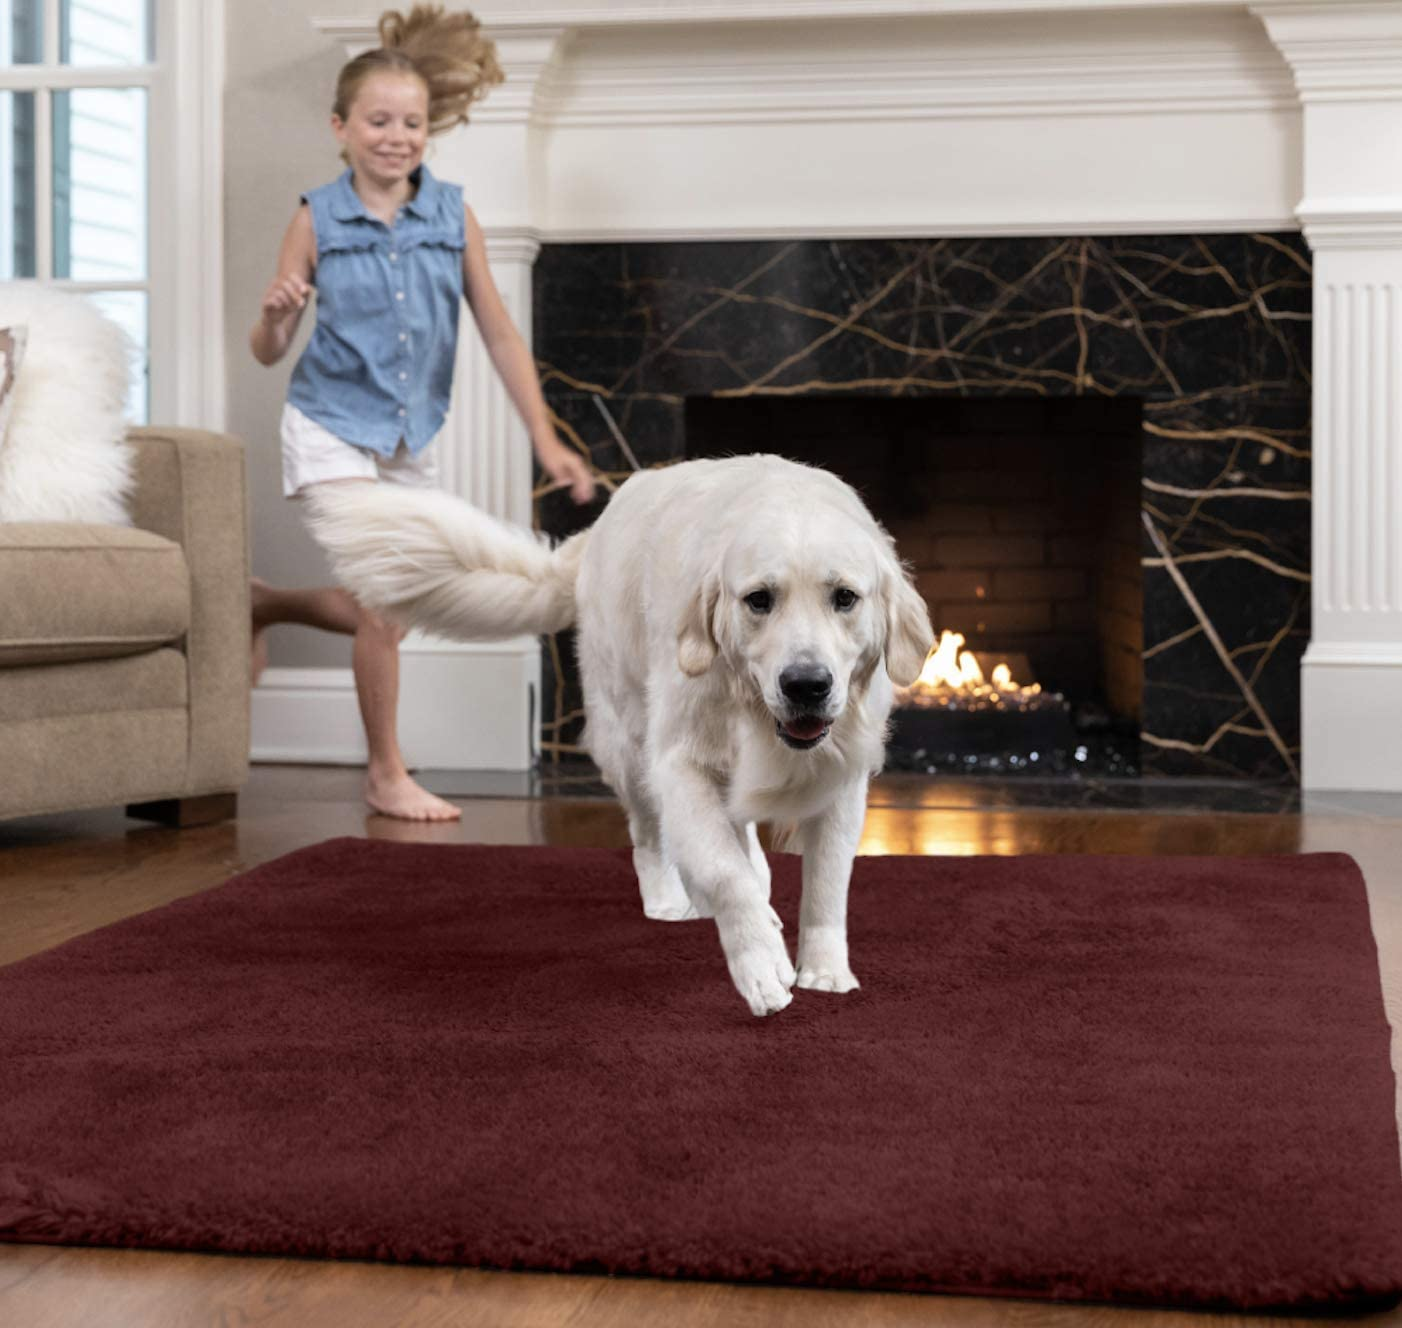 GORILLA GRIP Original Faux-Chinchilla Runner Rug, 2x8 FT, Many Colors, Soft Cozy High Pile Washable Kids Carpet, Rugs for Floor, Luxury Shag Carpets for Home, Nursery, Bed and Living Room, Burgundy